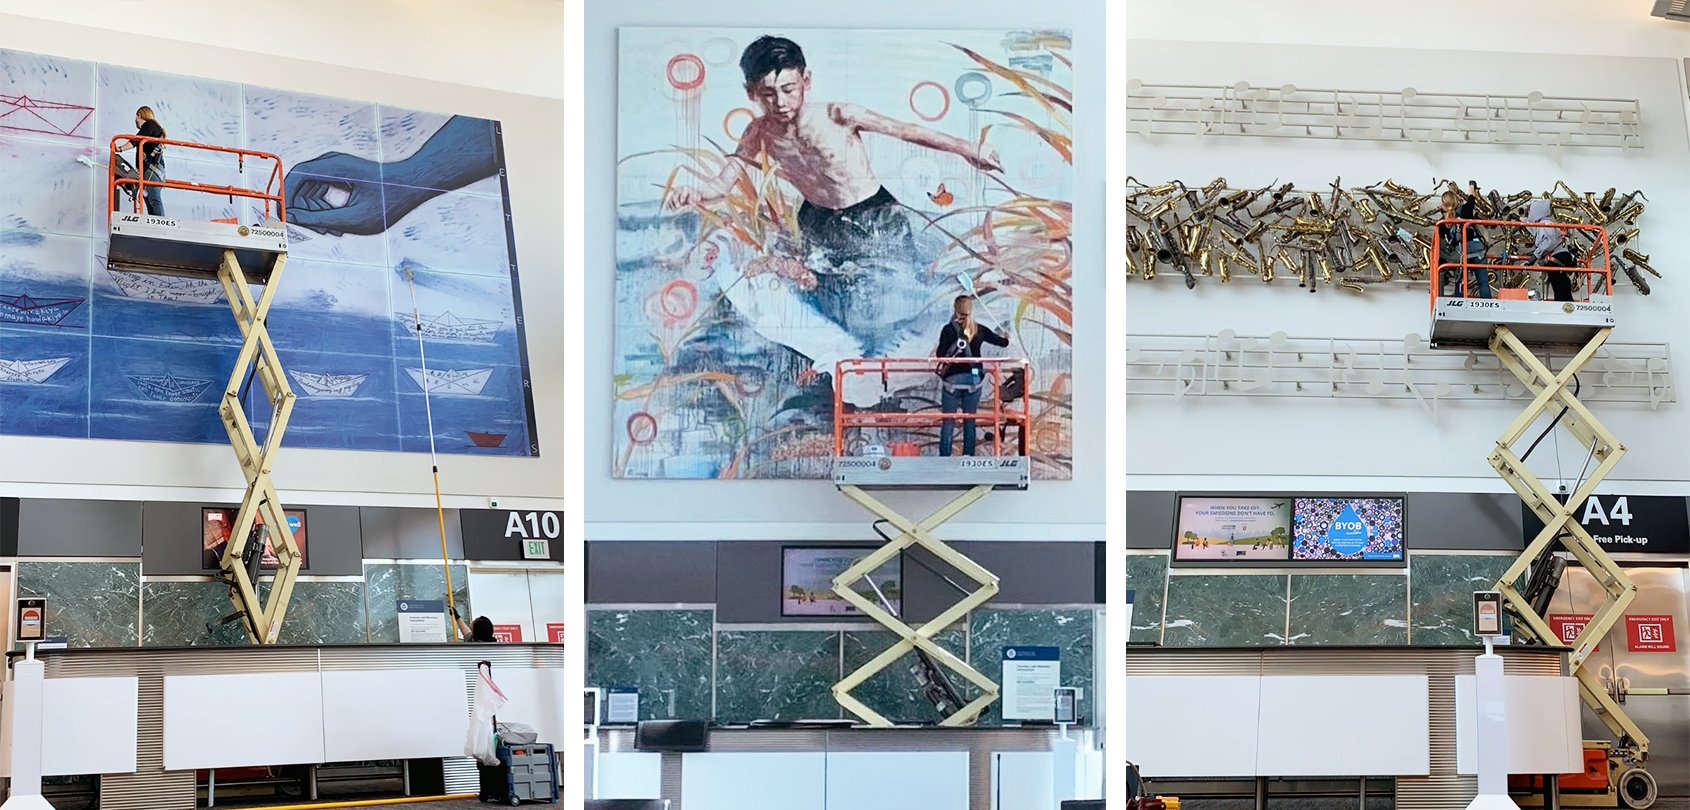 Raising the Bar: Care of the Public Art Collection at SFO